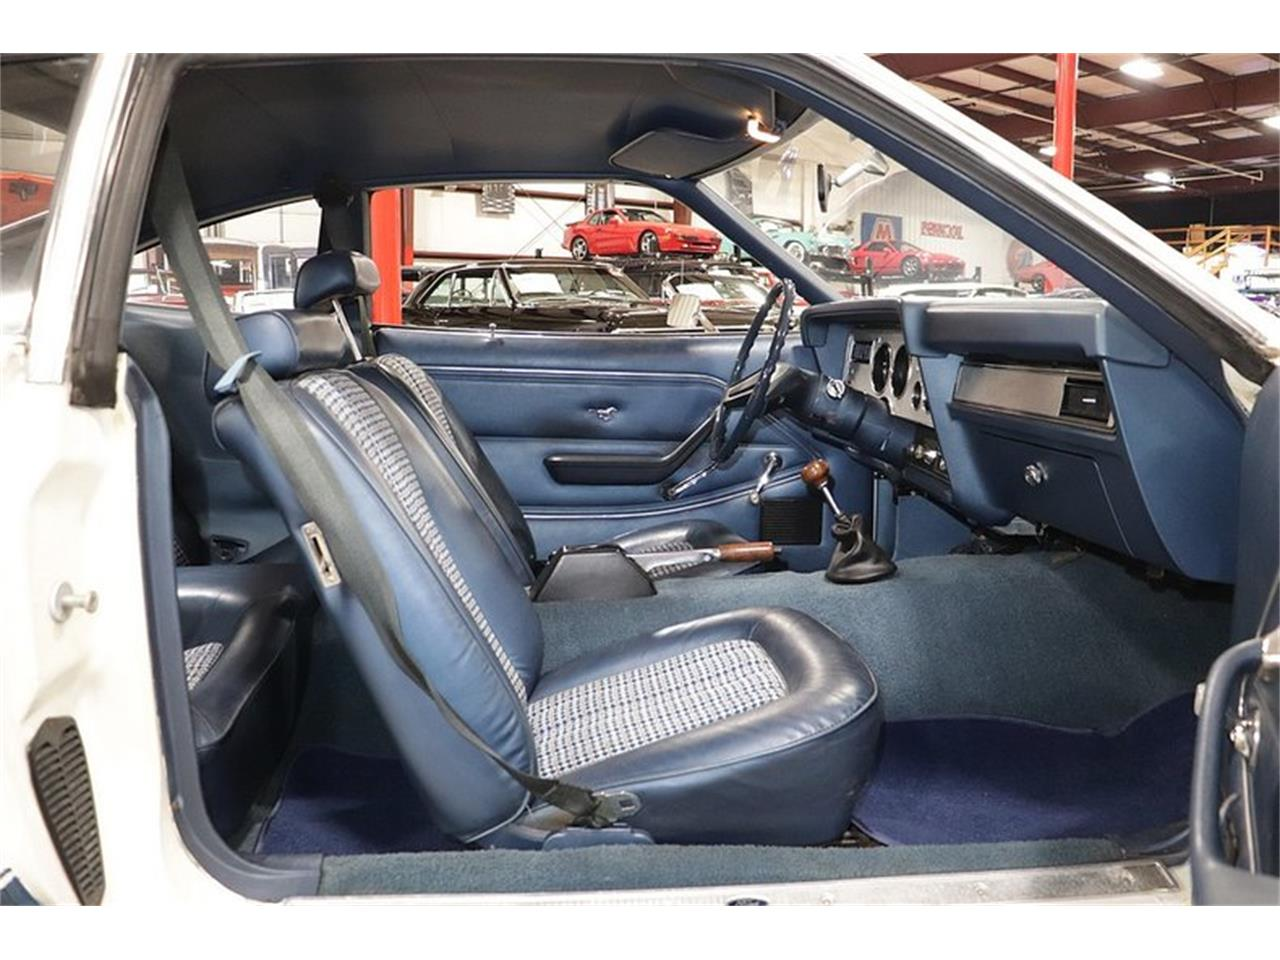 1976 Ford Mustang II Cobra for sale in Kentwood, MI – photo 54